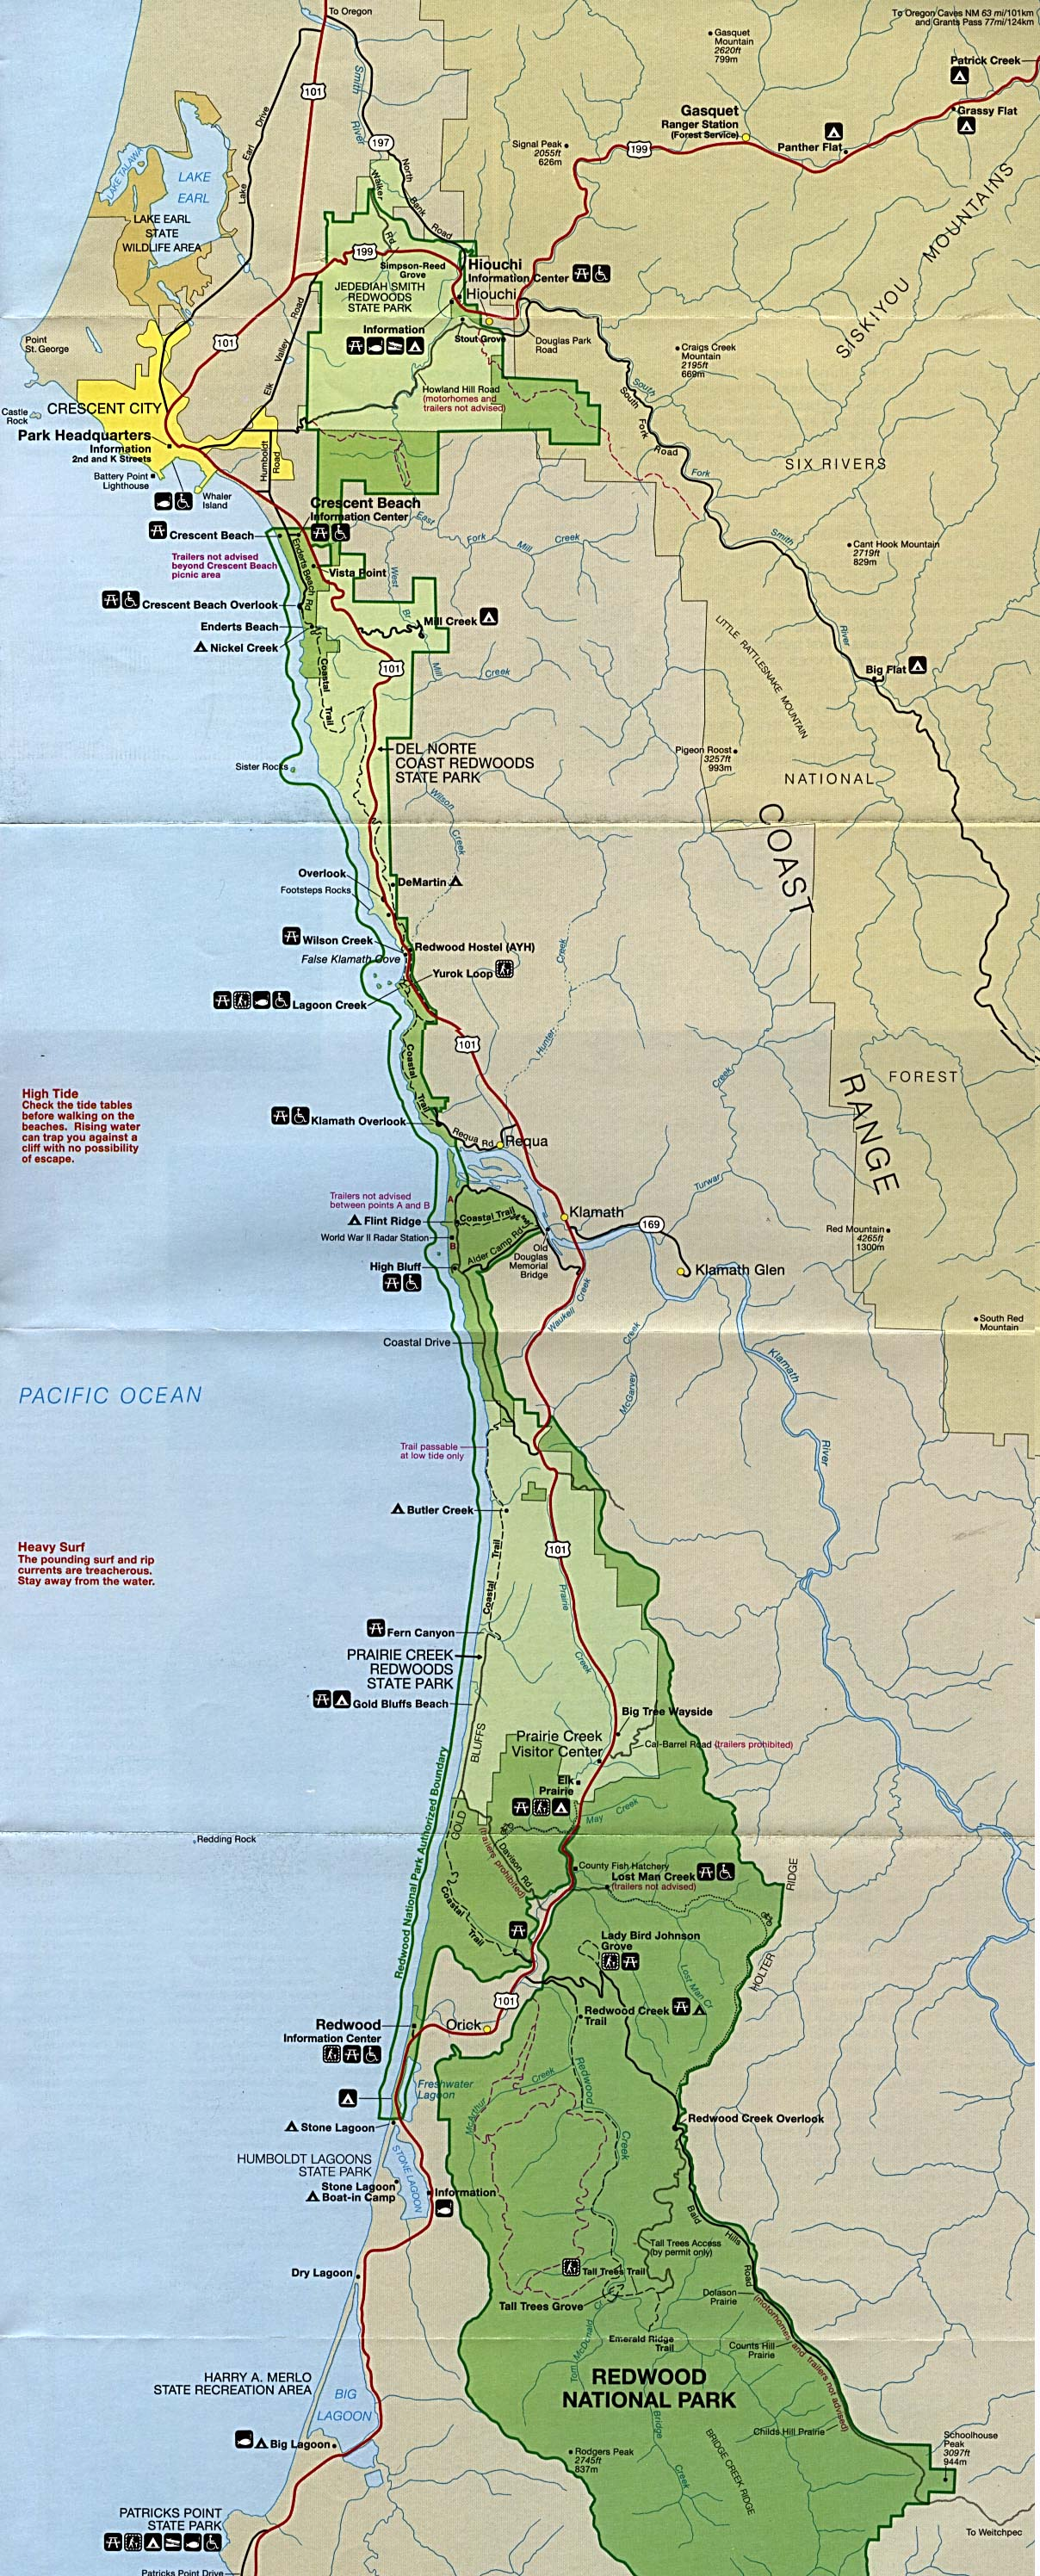 Free Download California National Park Maps on